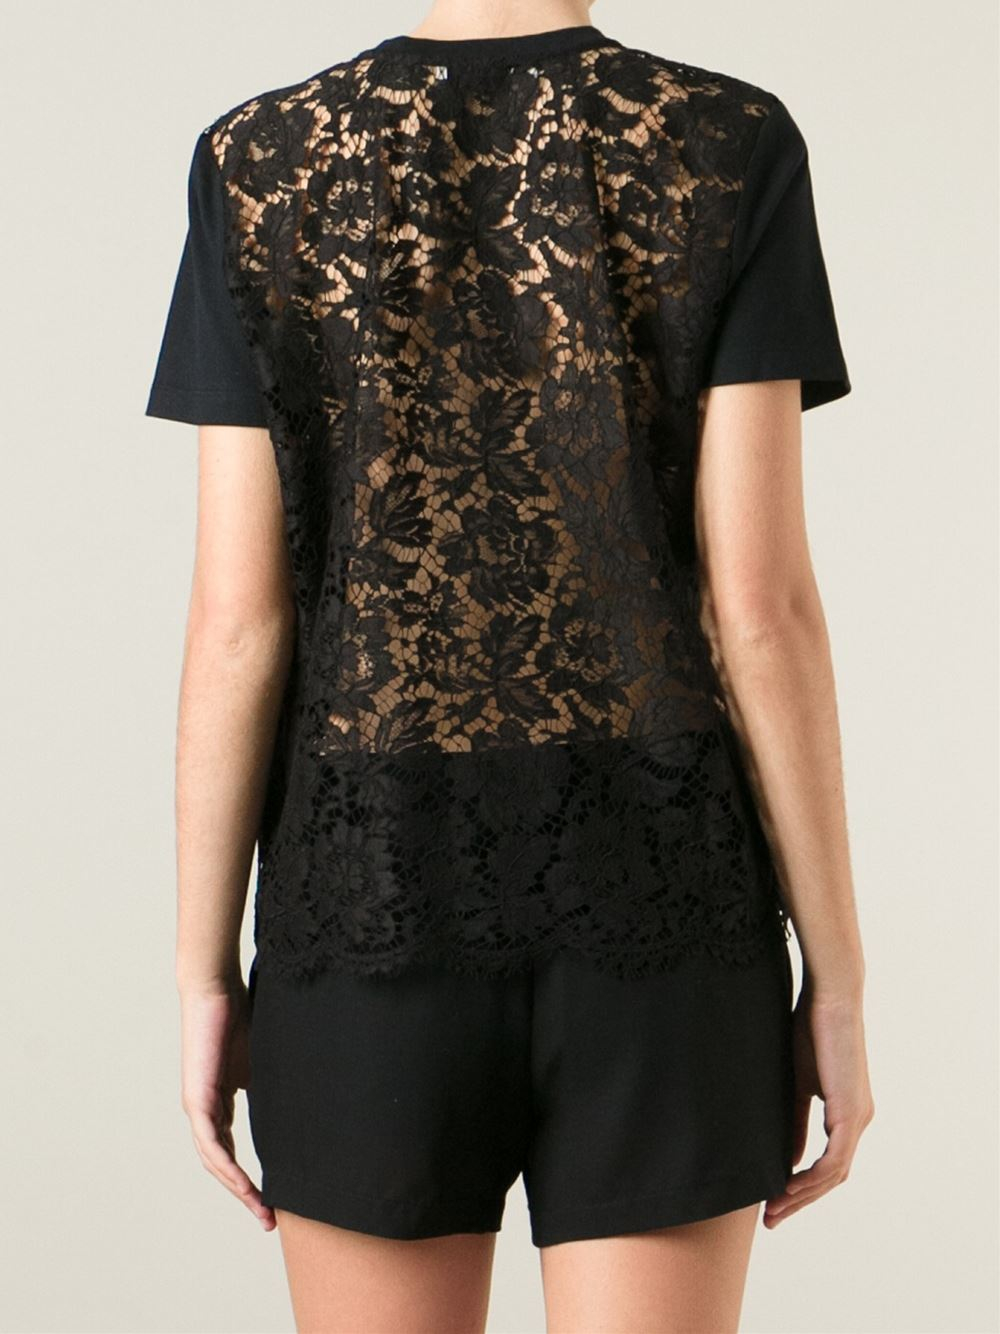 Black t shirt with lace - Gallery